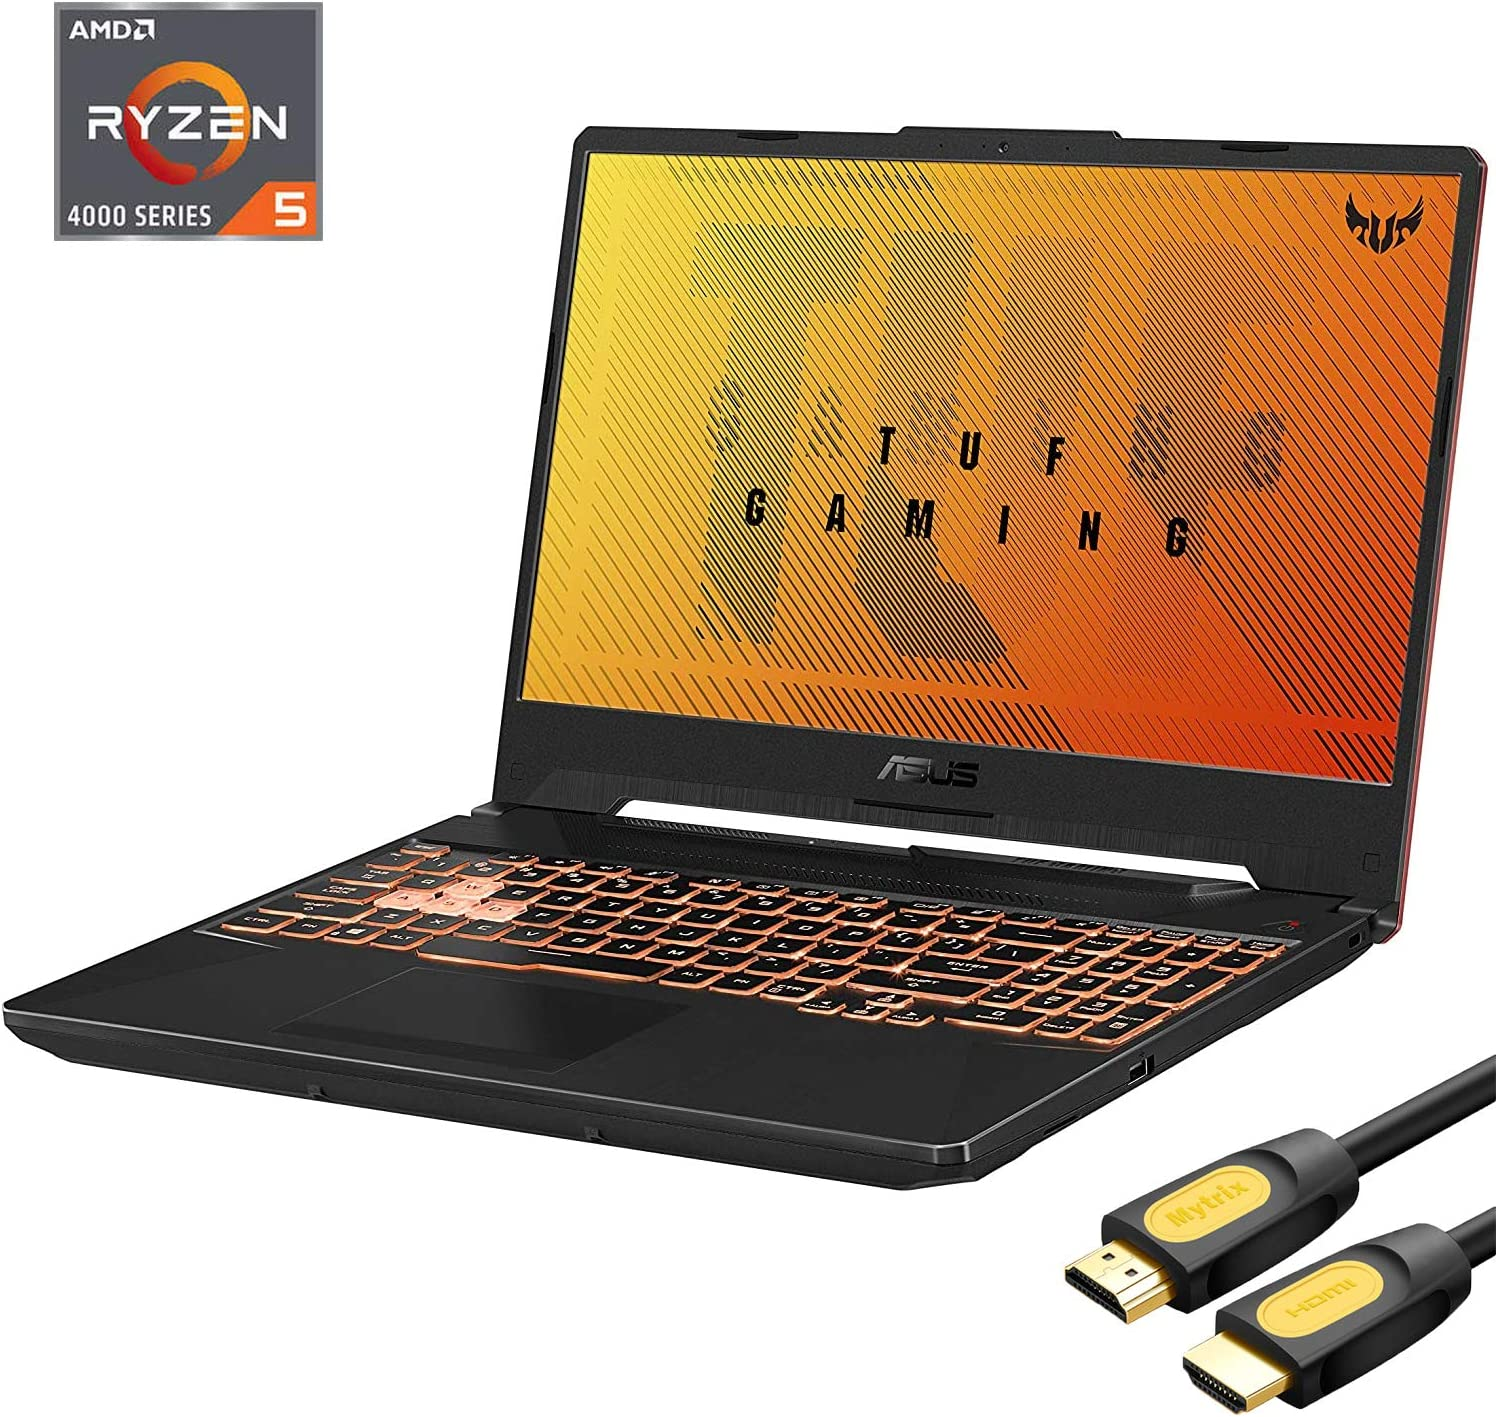 "ASUS TUF A15 Gaming 144Hz Laptop, 15.6"" FHD IPS-Type, AMD Ryzen 5 4600H 6-Core up to 4.0 GHz, GTX 1650, 16GB RAM, 512GB SSD+2TB HDD, RGB KB, RJ-45, Mytrix HDMI Cable, Win 10"